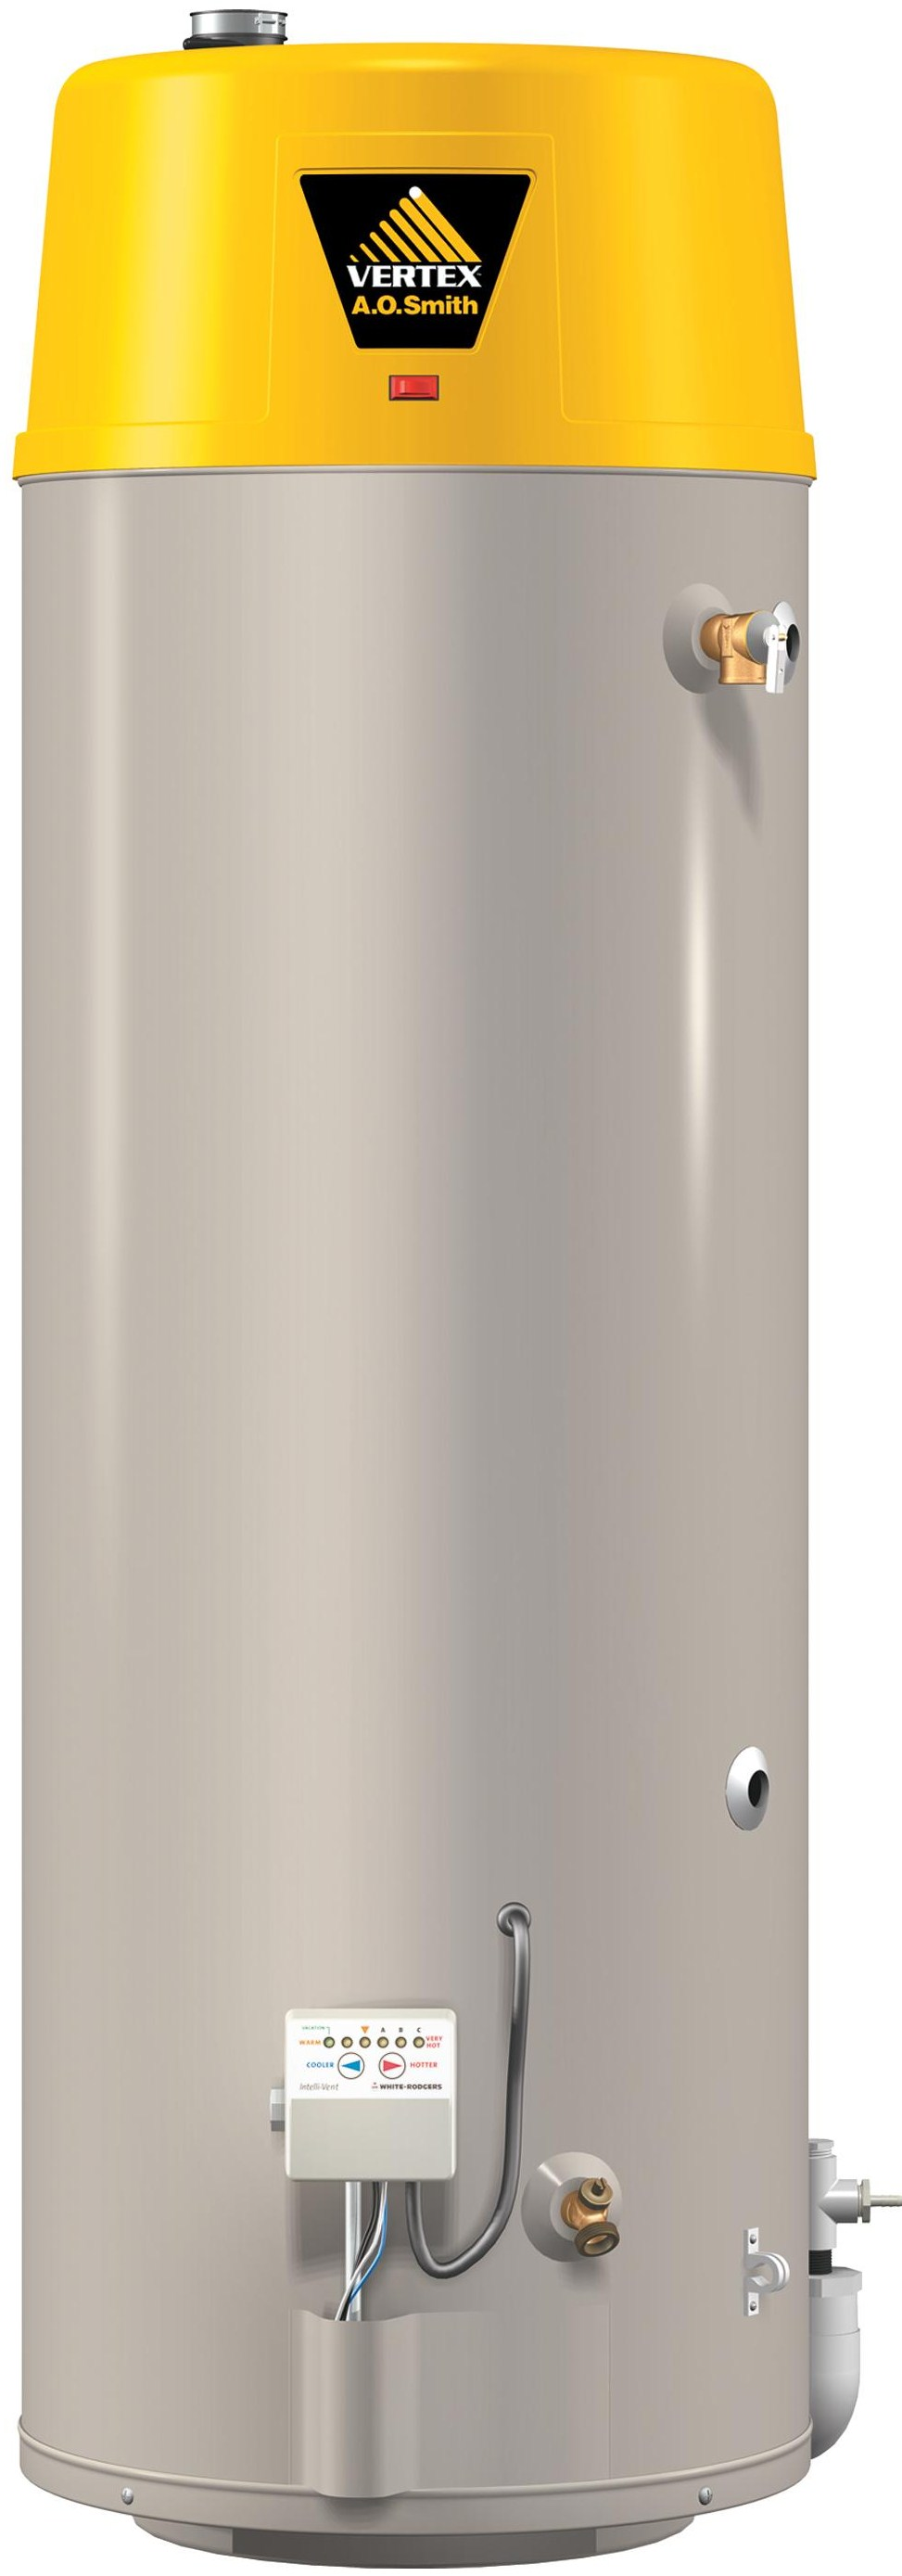 Power vent lp water heater - Find the largest selection of power vent lp water heater on sale. Shop by price, color, locally and more. Get the best sales, coupons